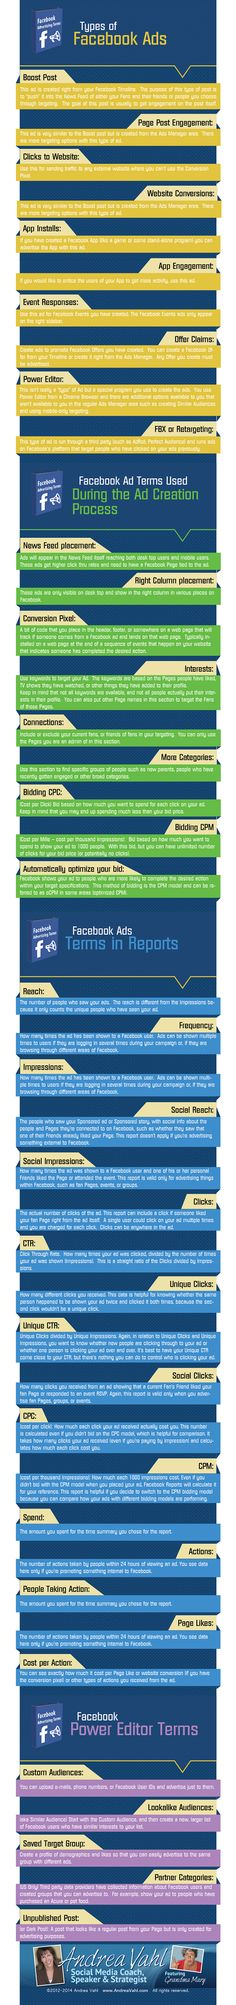 Types of #Facebook Ads. Find your exact target audience on Facebook - http://smal.in/FaceSniper #infographic